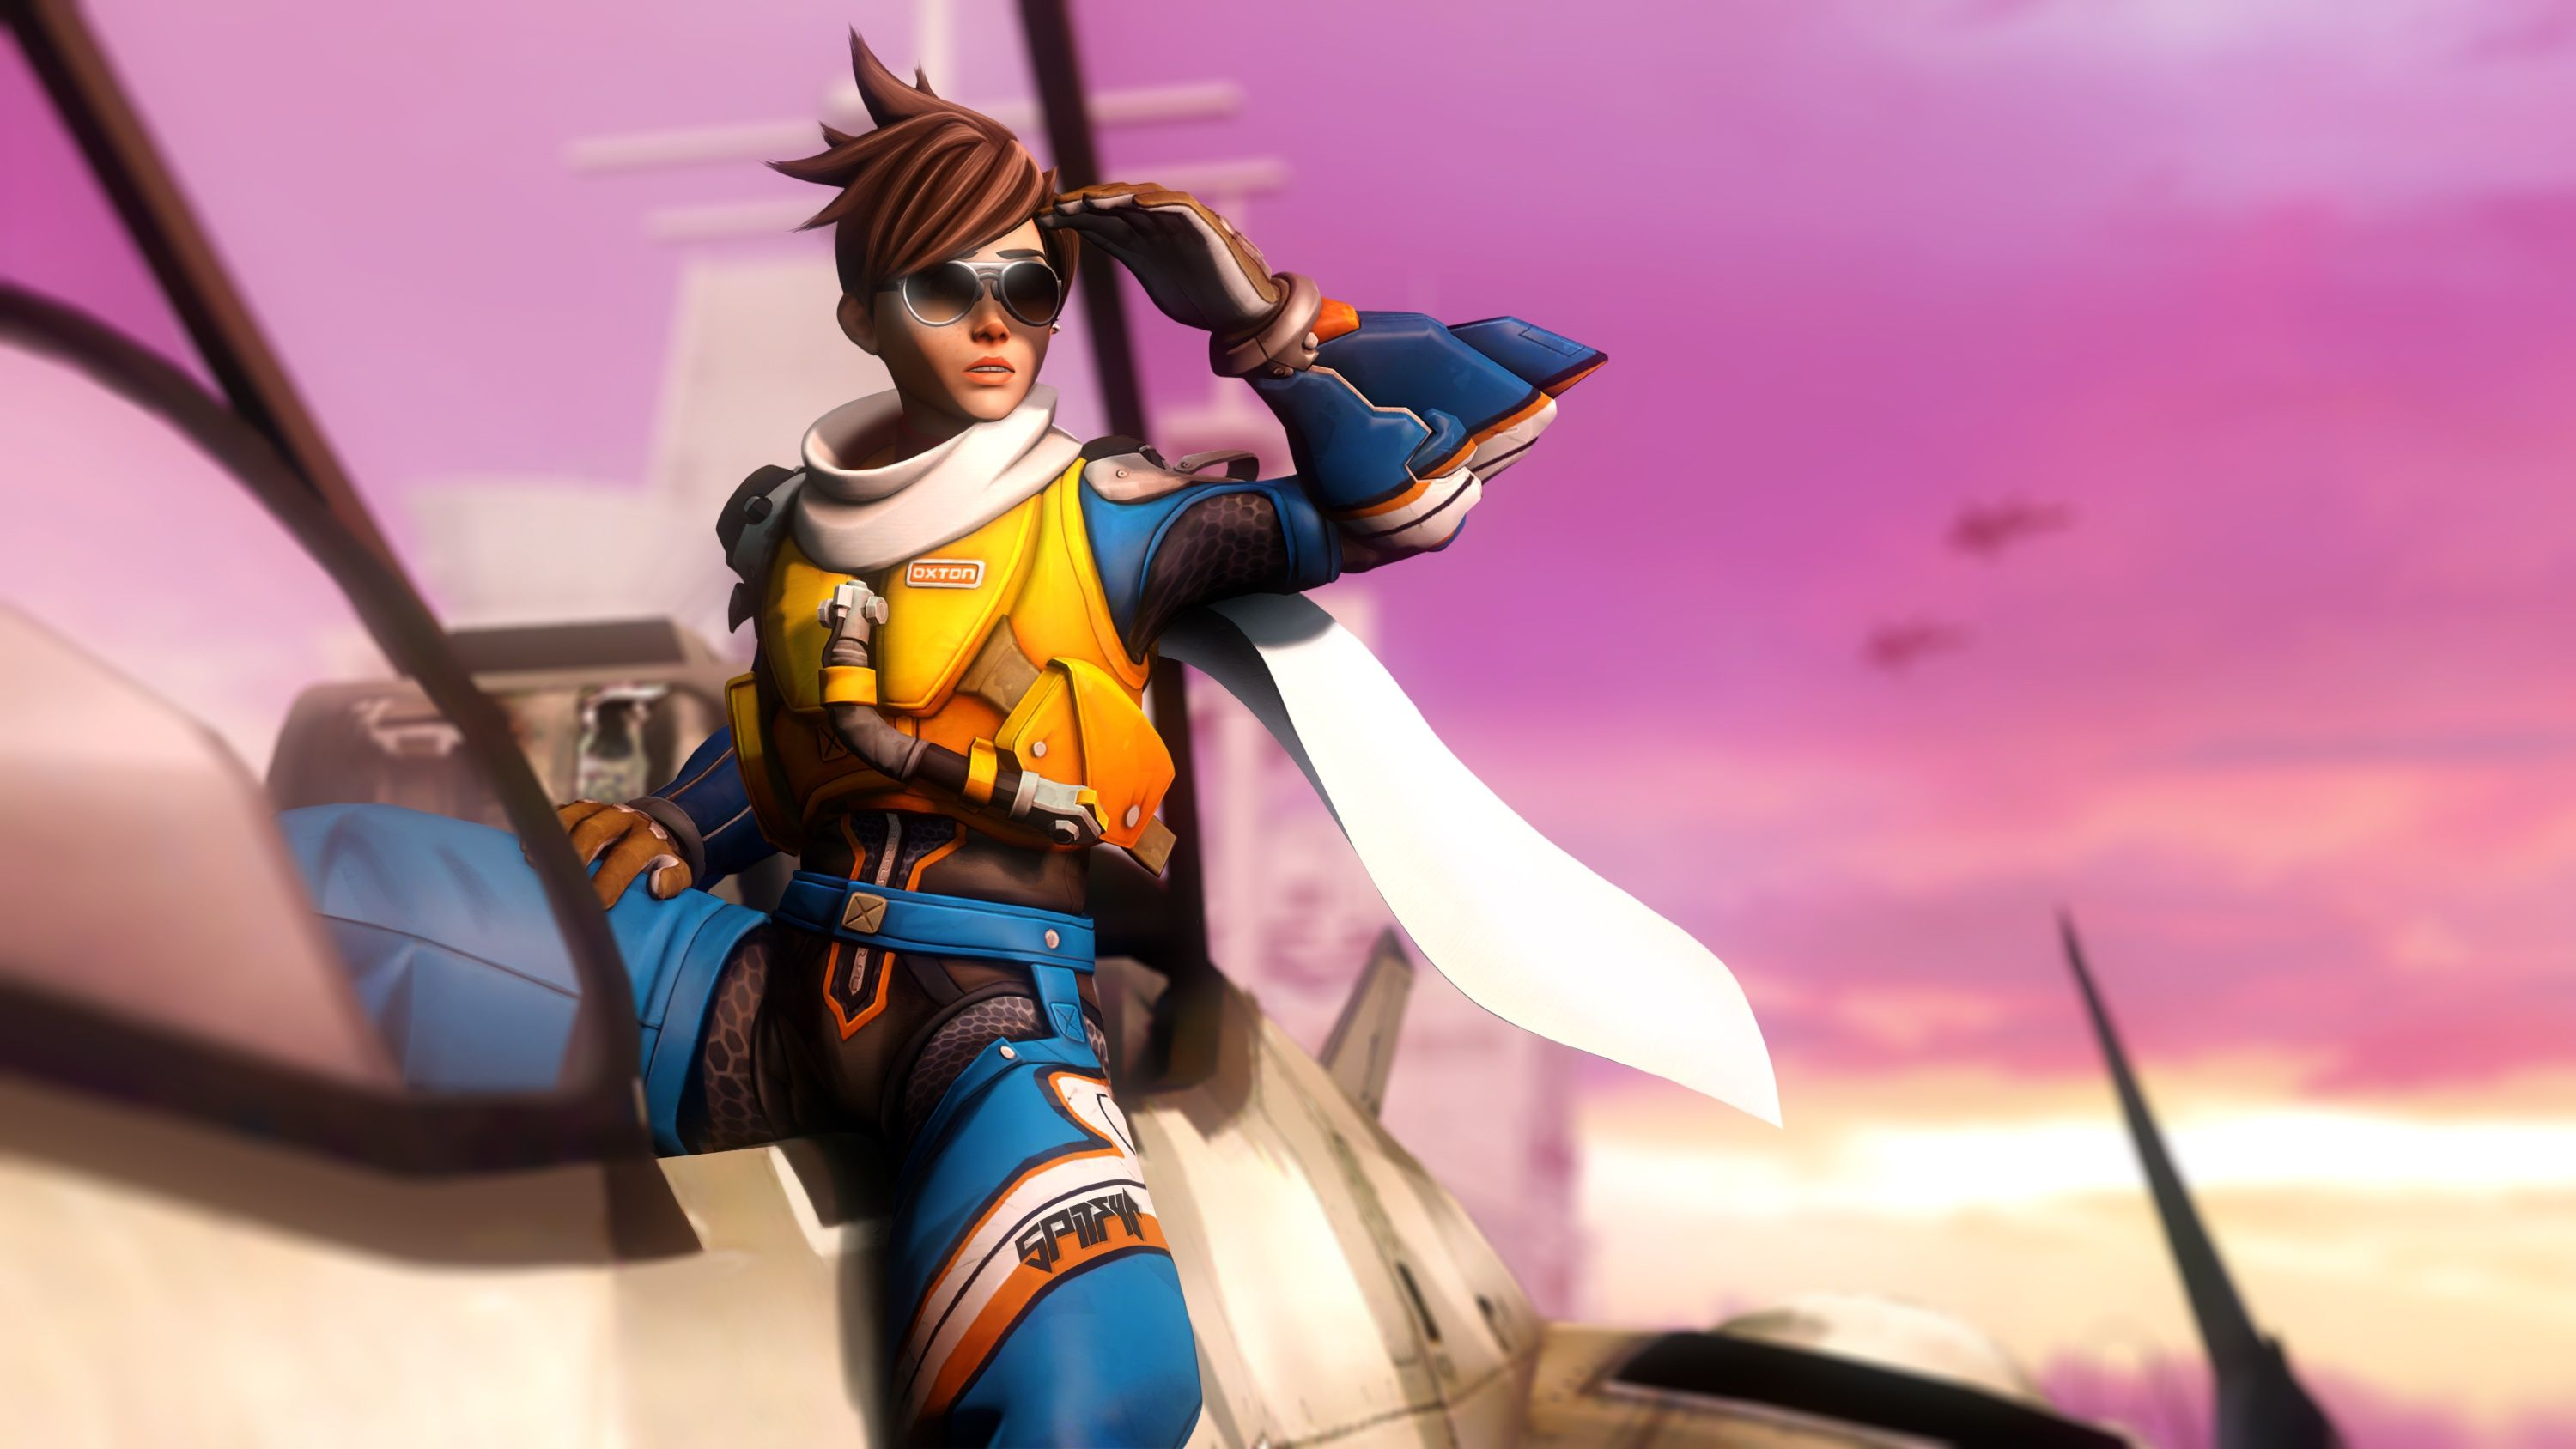 Tracer Overwatch Hd Wallpapers Backgrounds Wallpaper Hd